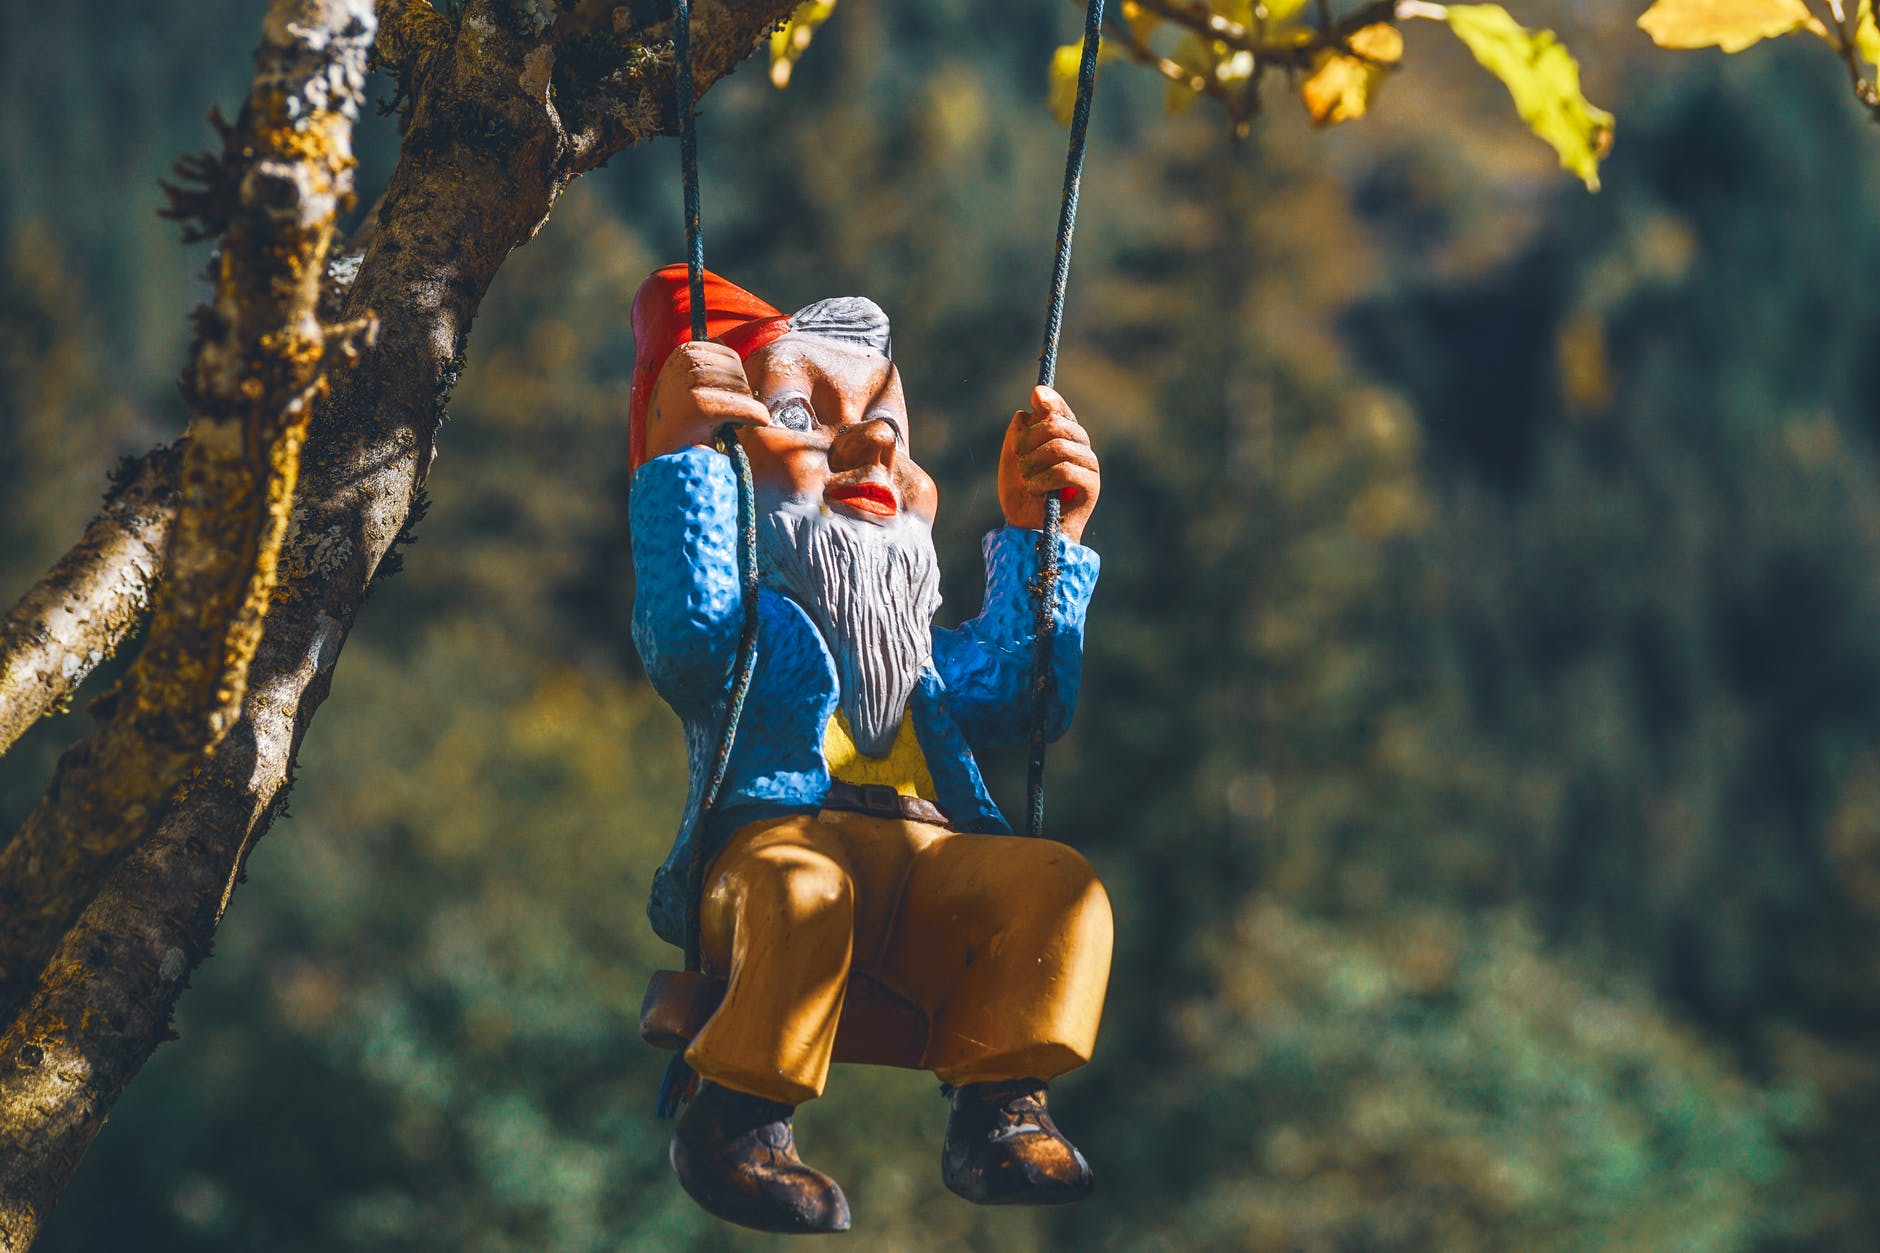 A photo of a garden gnome swinging in a tree.